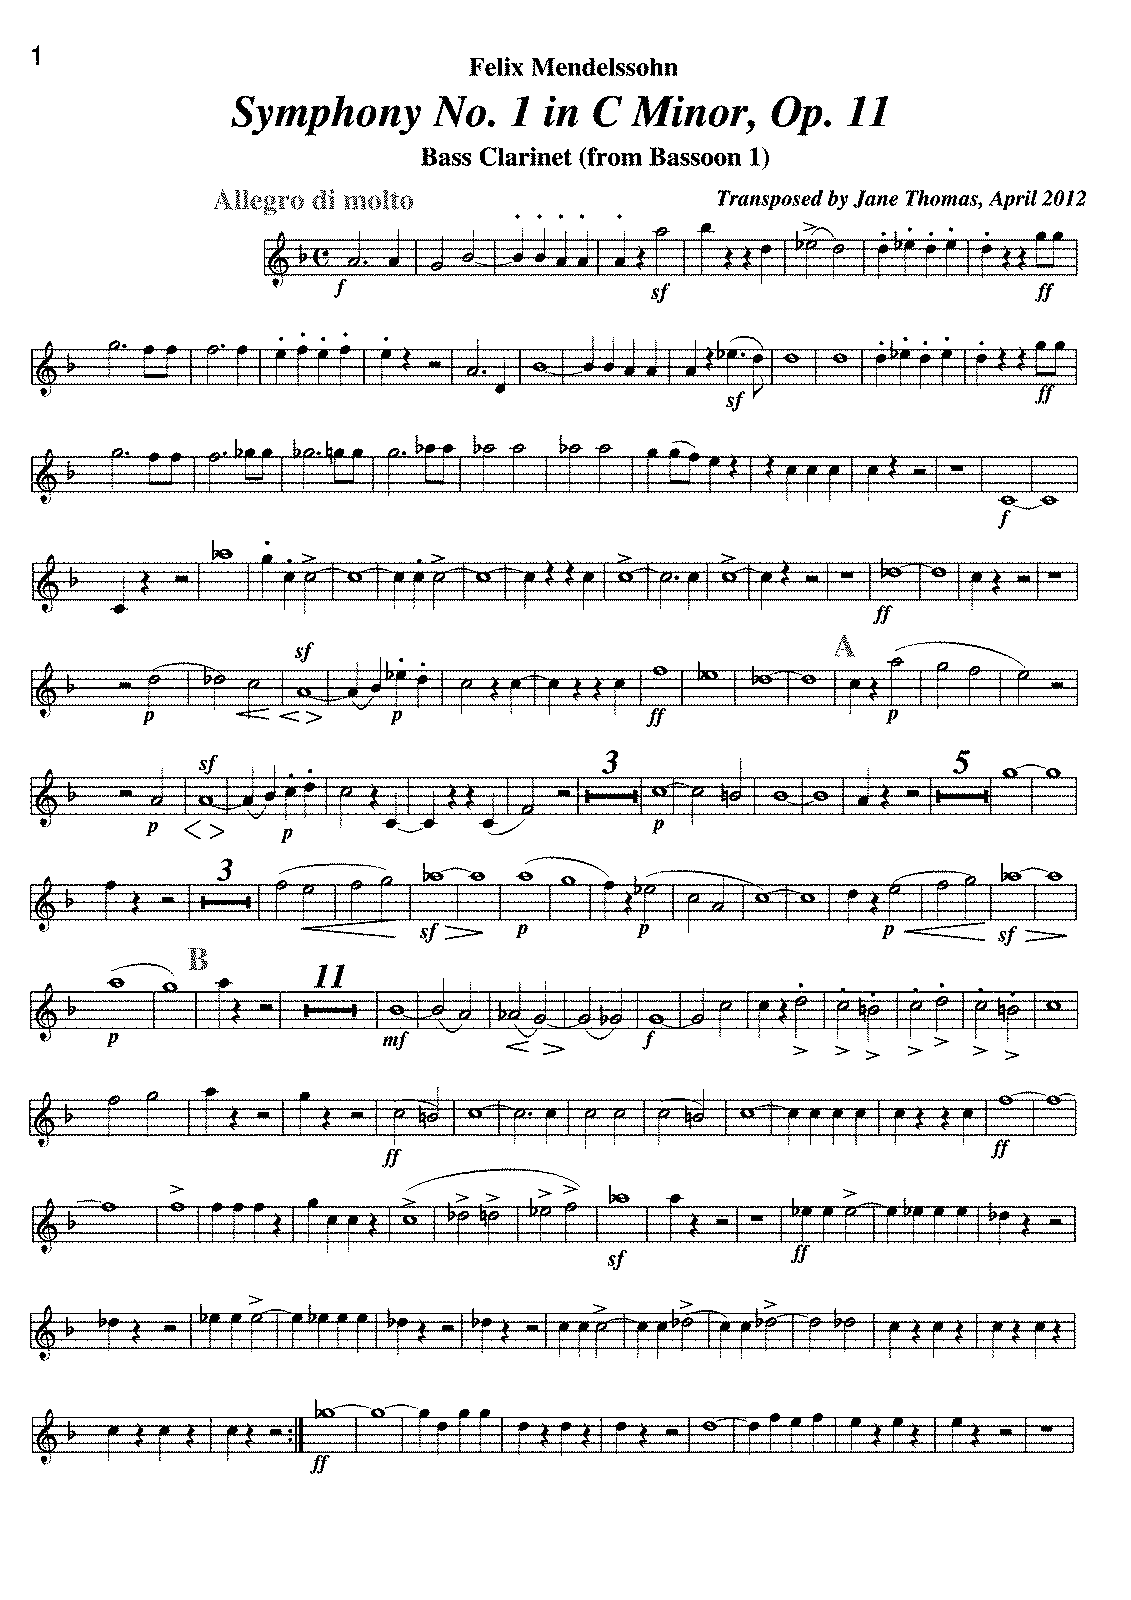 PMLP18966-Mendelssohn-Symphony No. 1. Bassoon transposed for Bass Clarinet.pdf